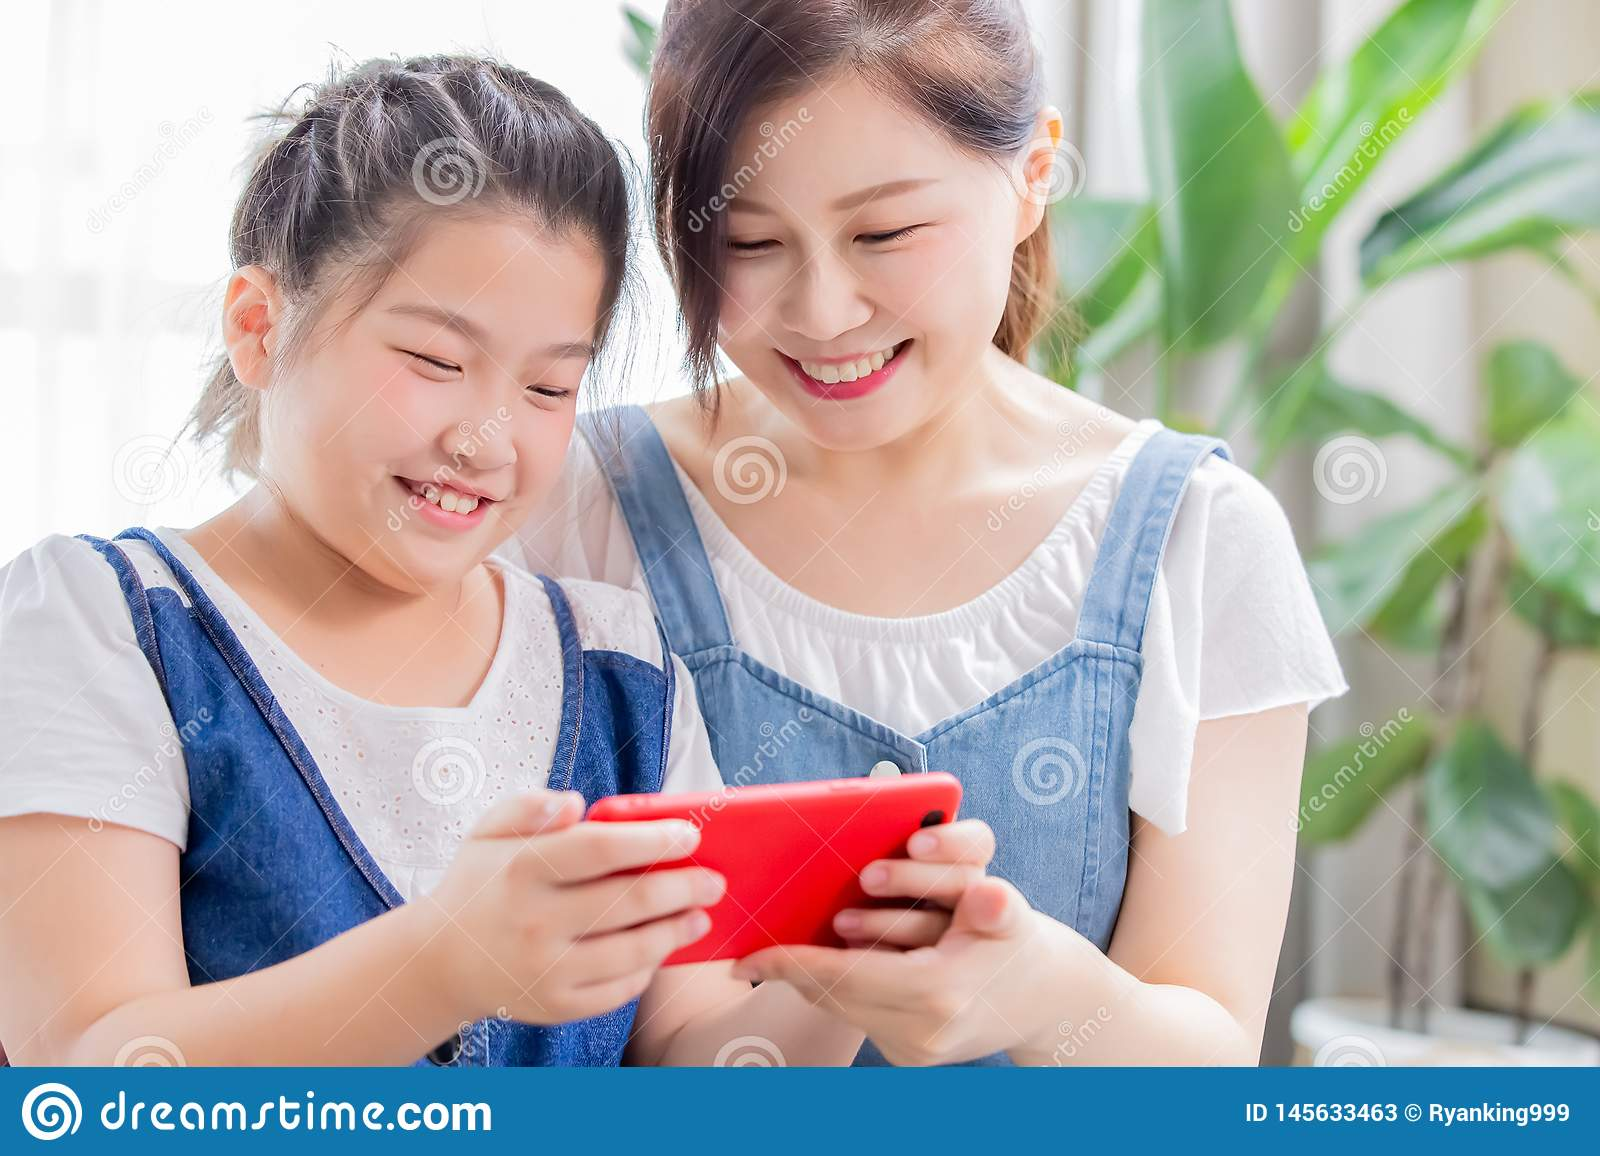 Daughter and mom play mobile game